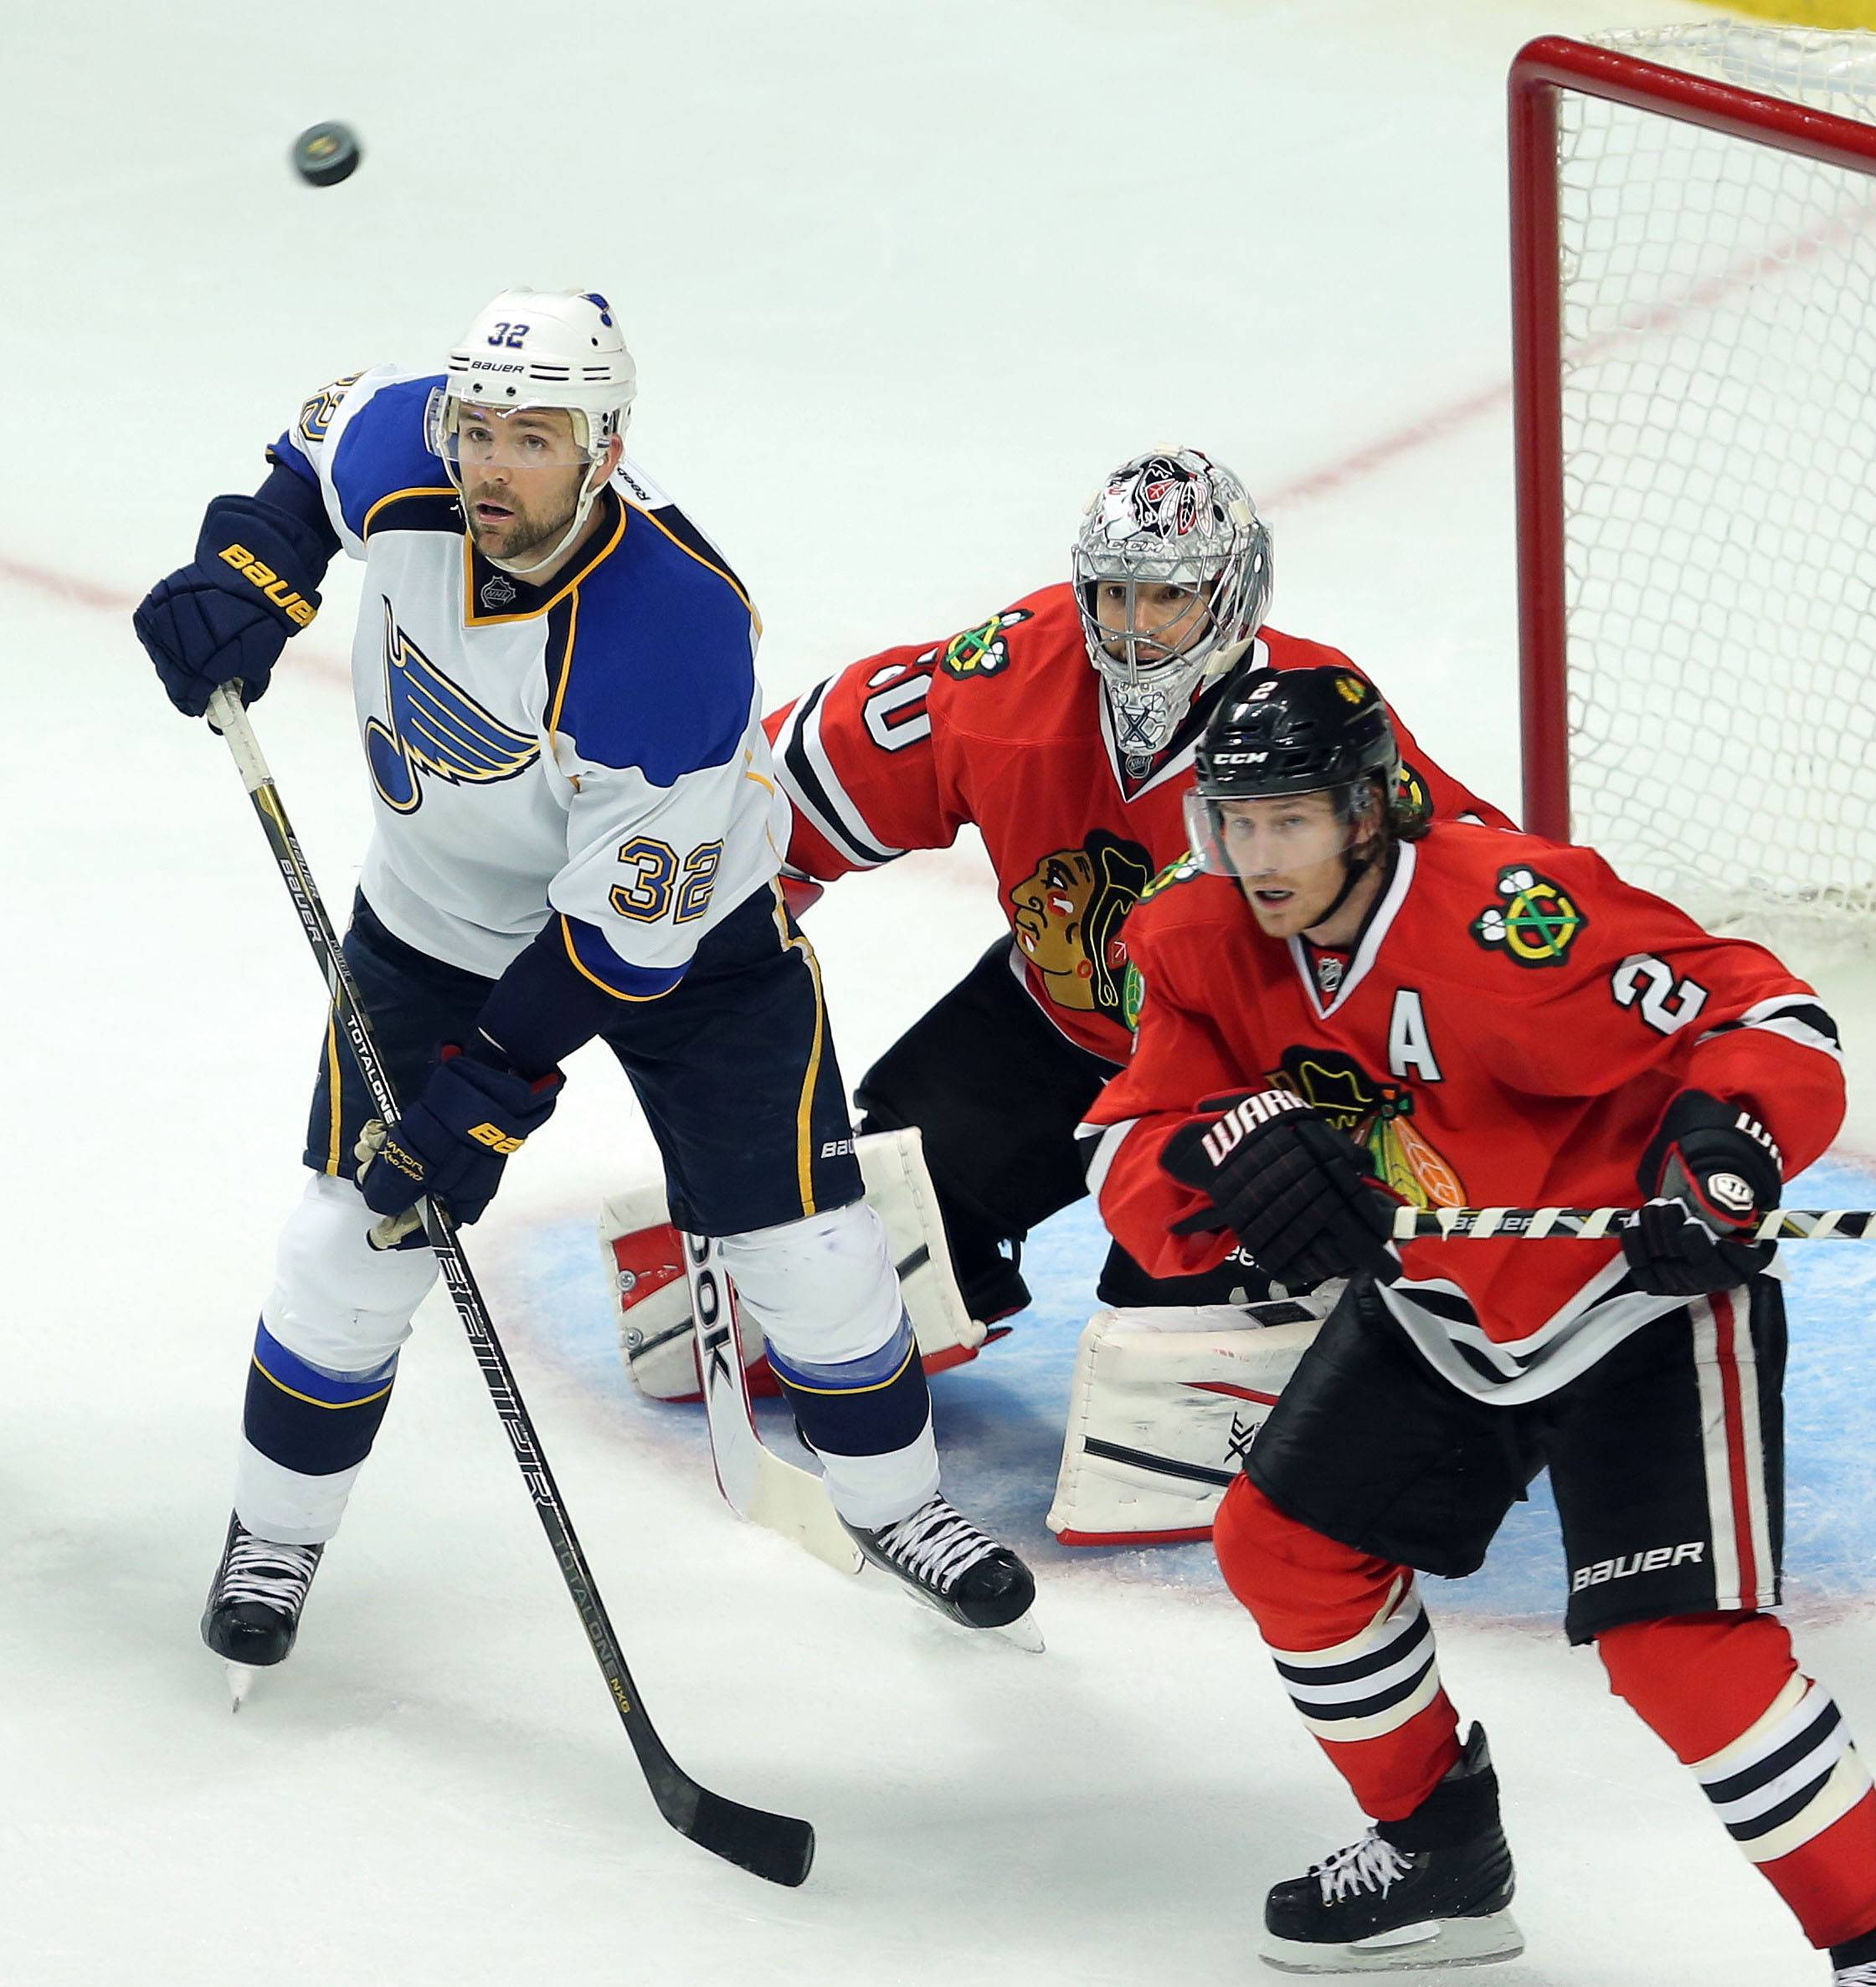 St. Louis Blues left wing Chris Porter, Chicago Blackhawks goalie Corey Crawford  and Chicago Blackhawks defenseman Duncan Keith watch as a puck flies.